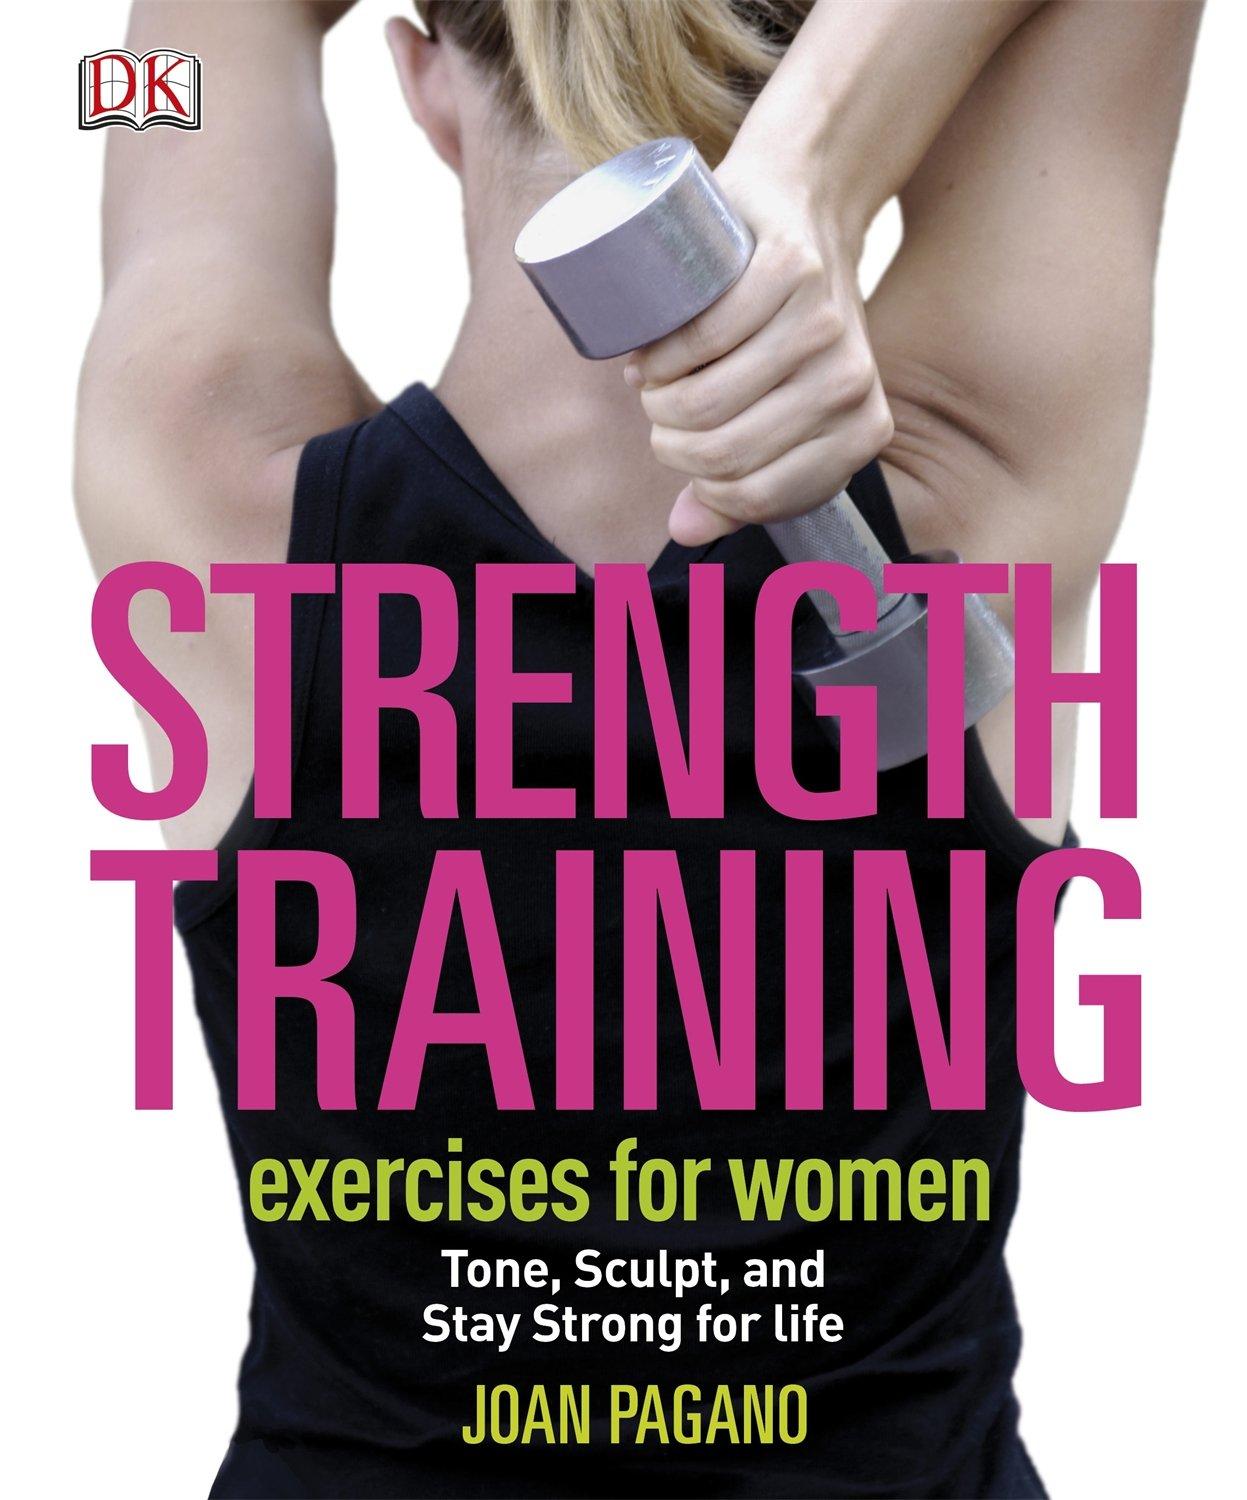 Joan Pagano: Strength Training for Women